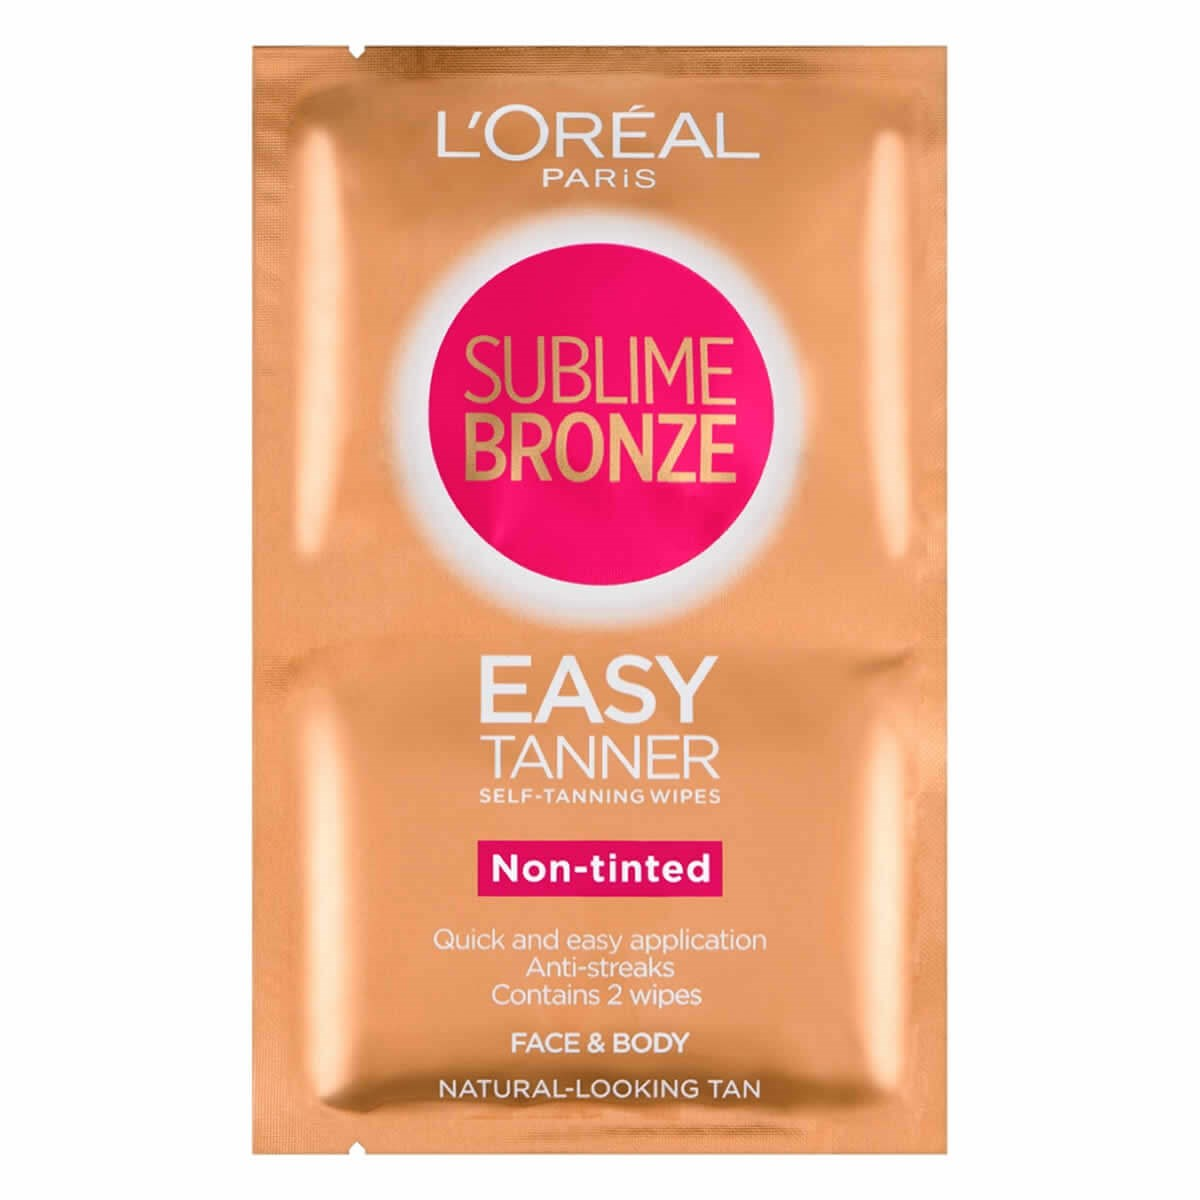 L'Oreal Paris Sublime Bronze Easy Tanner Self-Tanning Wipes For Face & Body Non-tinted